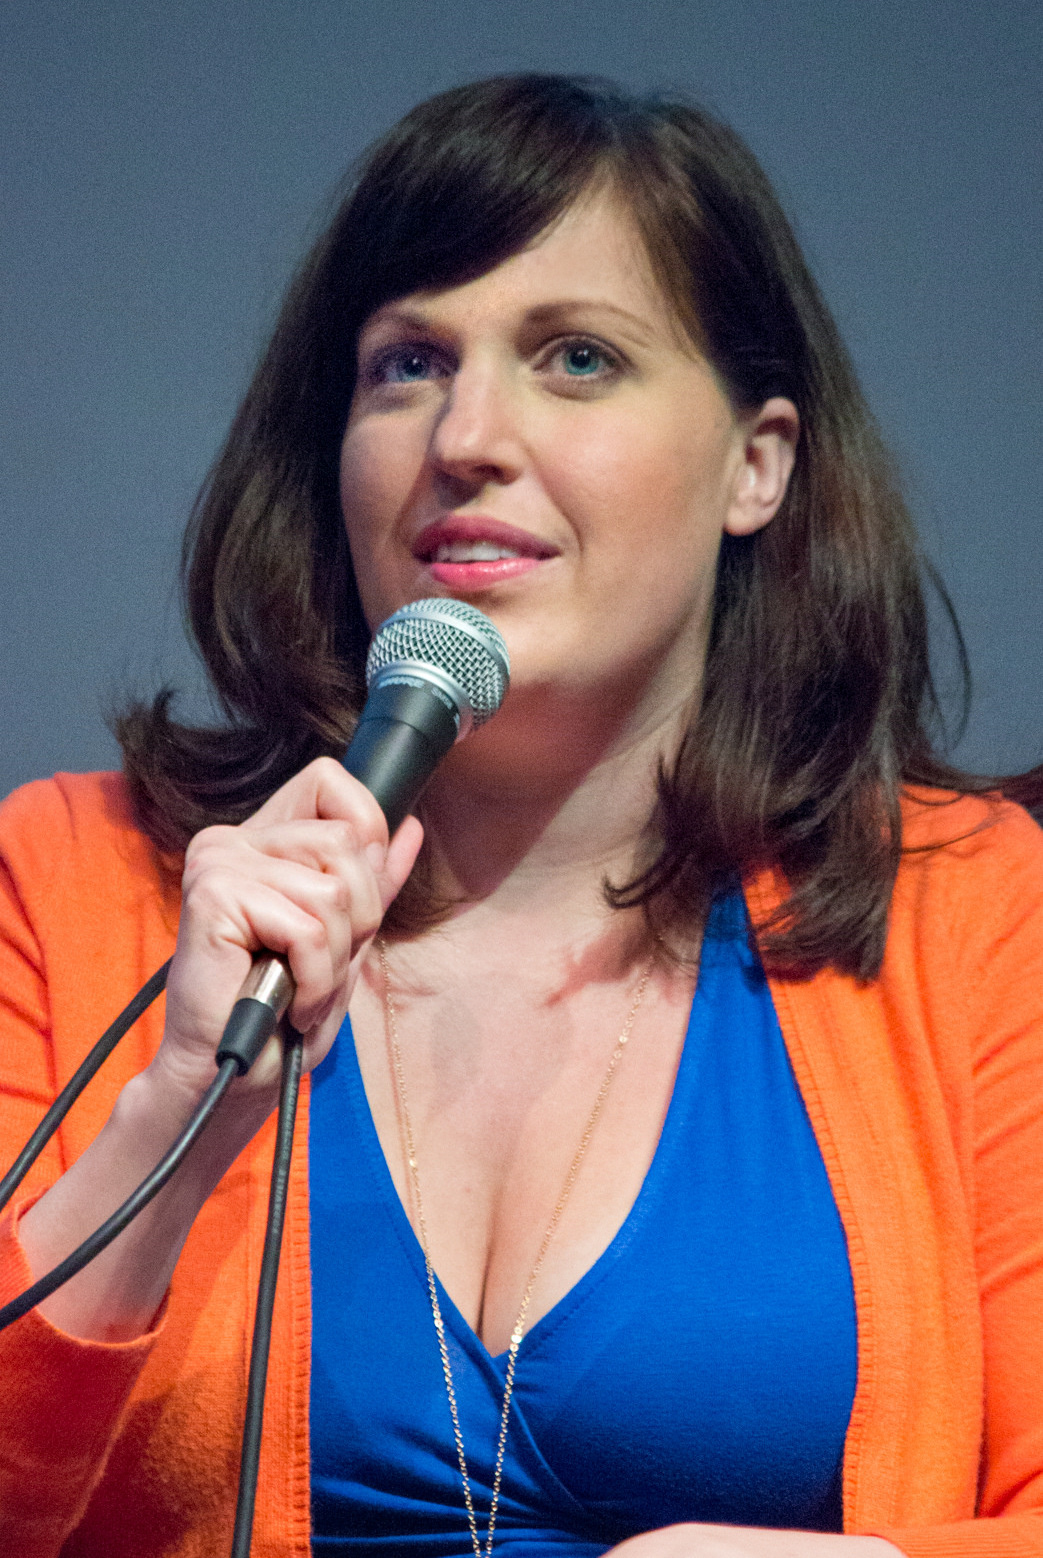 The 36-year old daughter of father Davis Tolman and mother Valerie Tolman Allison Tolman in 2018 photo. Allison Tolman earned a  million dollar salary - leaving the net worth at 2 million in 2018